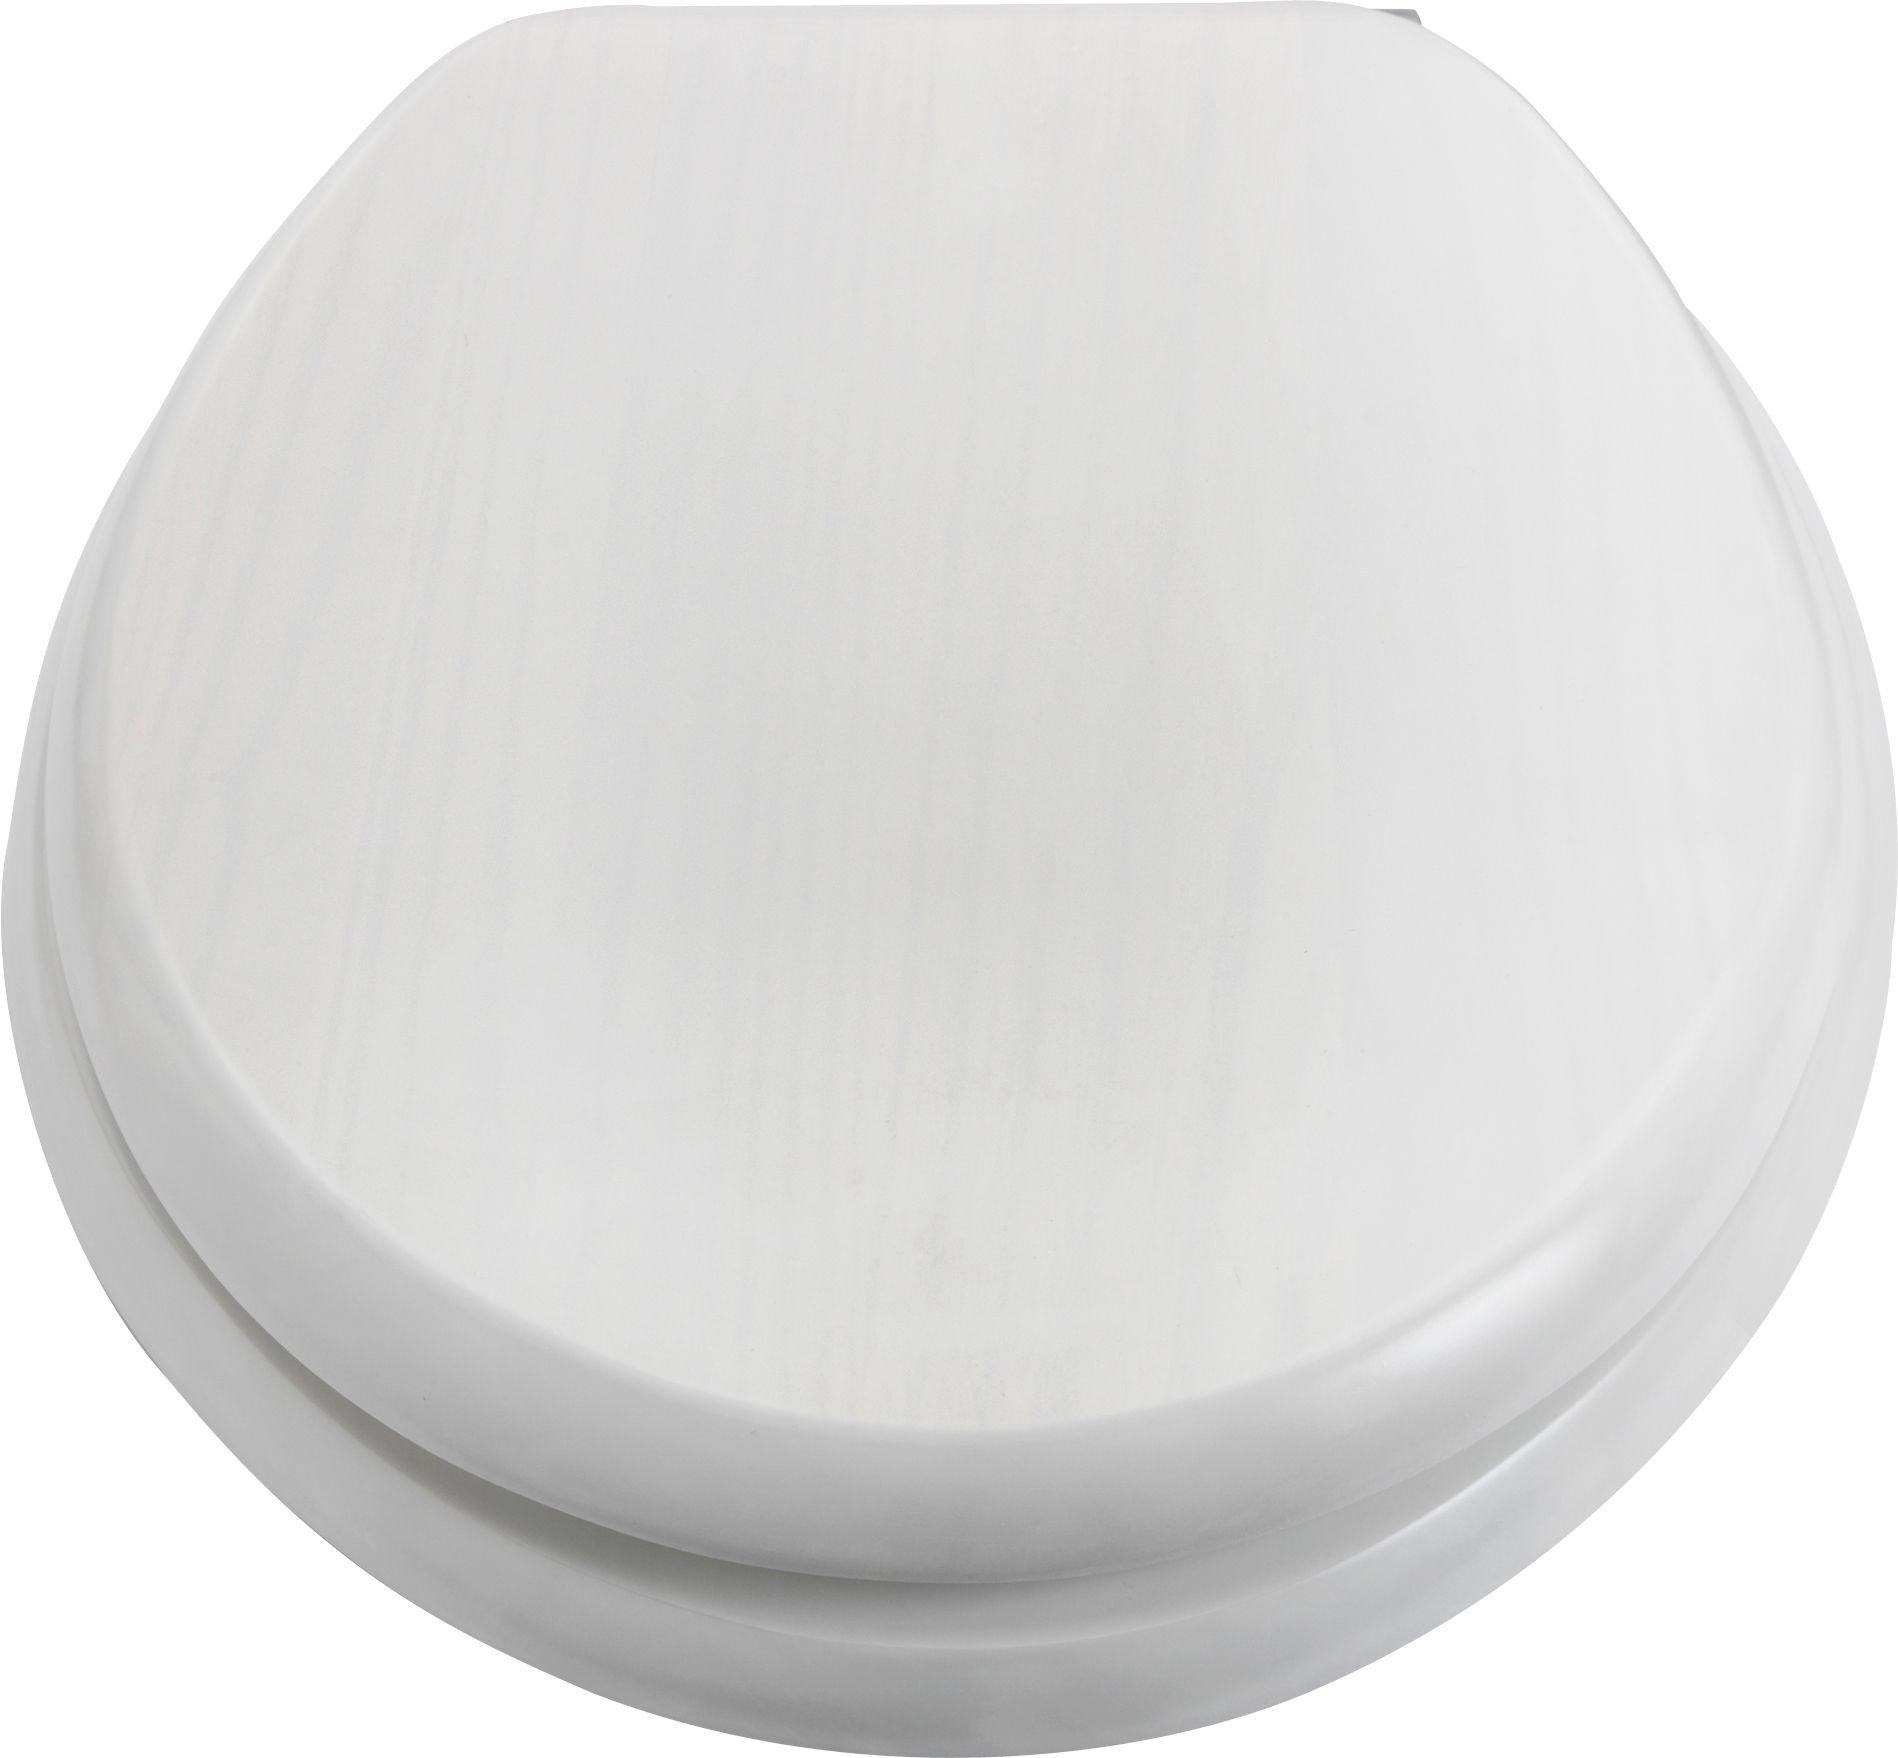 white wooden toilet seat soft close. collection solid wood slow close toilet seat - white washed wooden soft argos